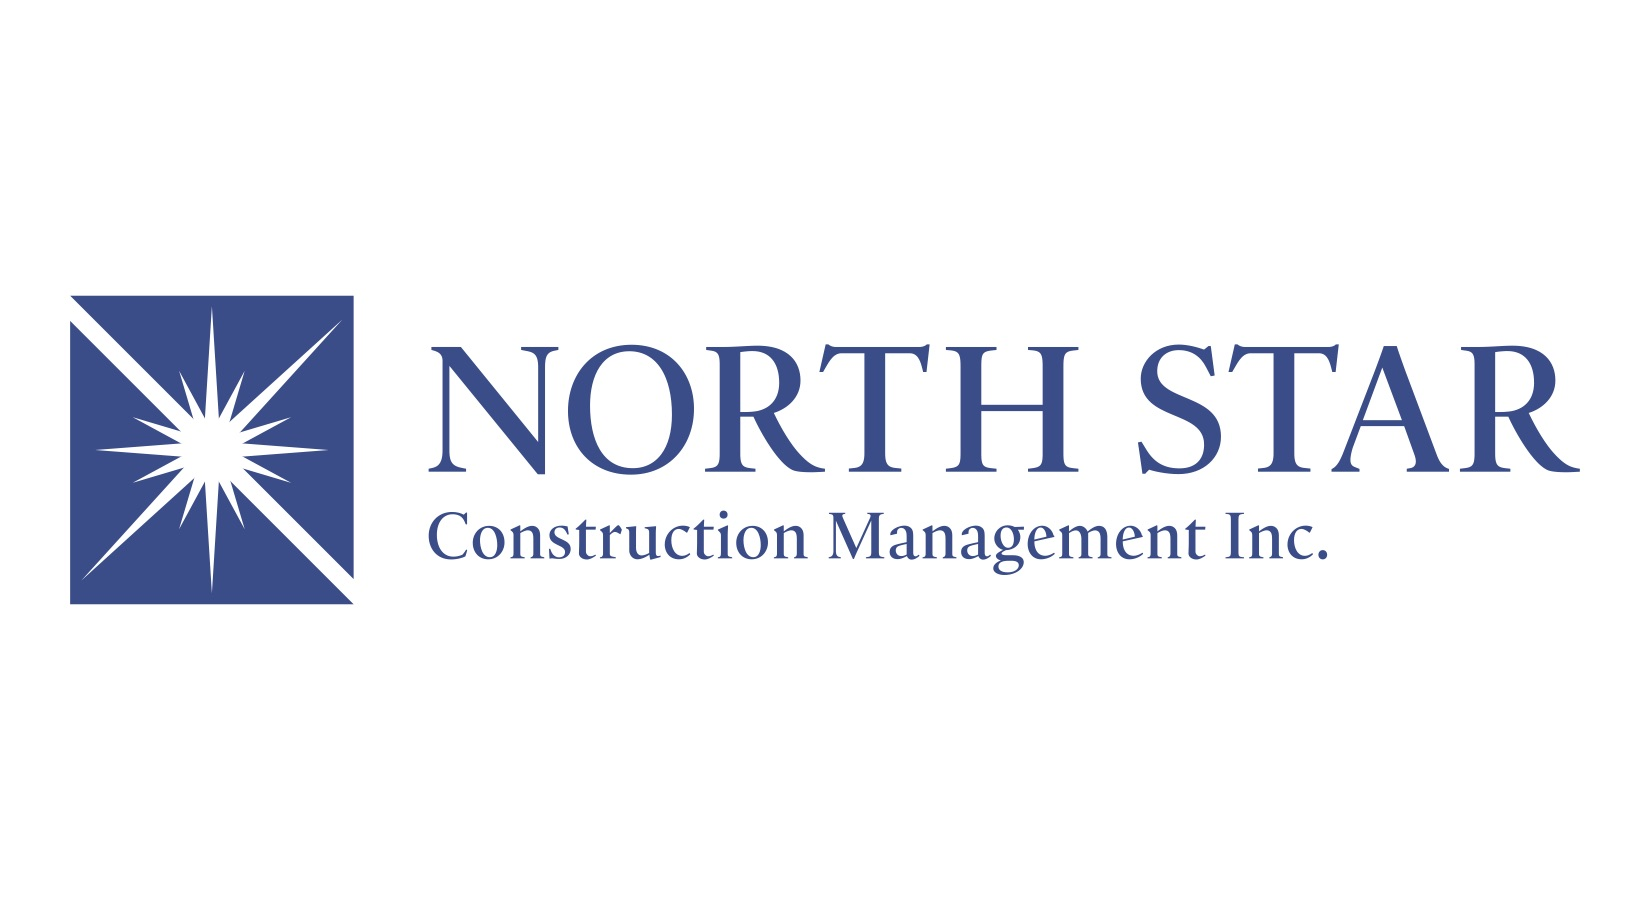 North Star Construction Management